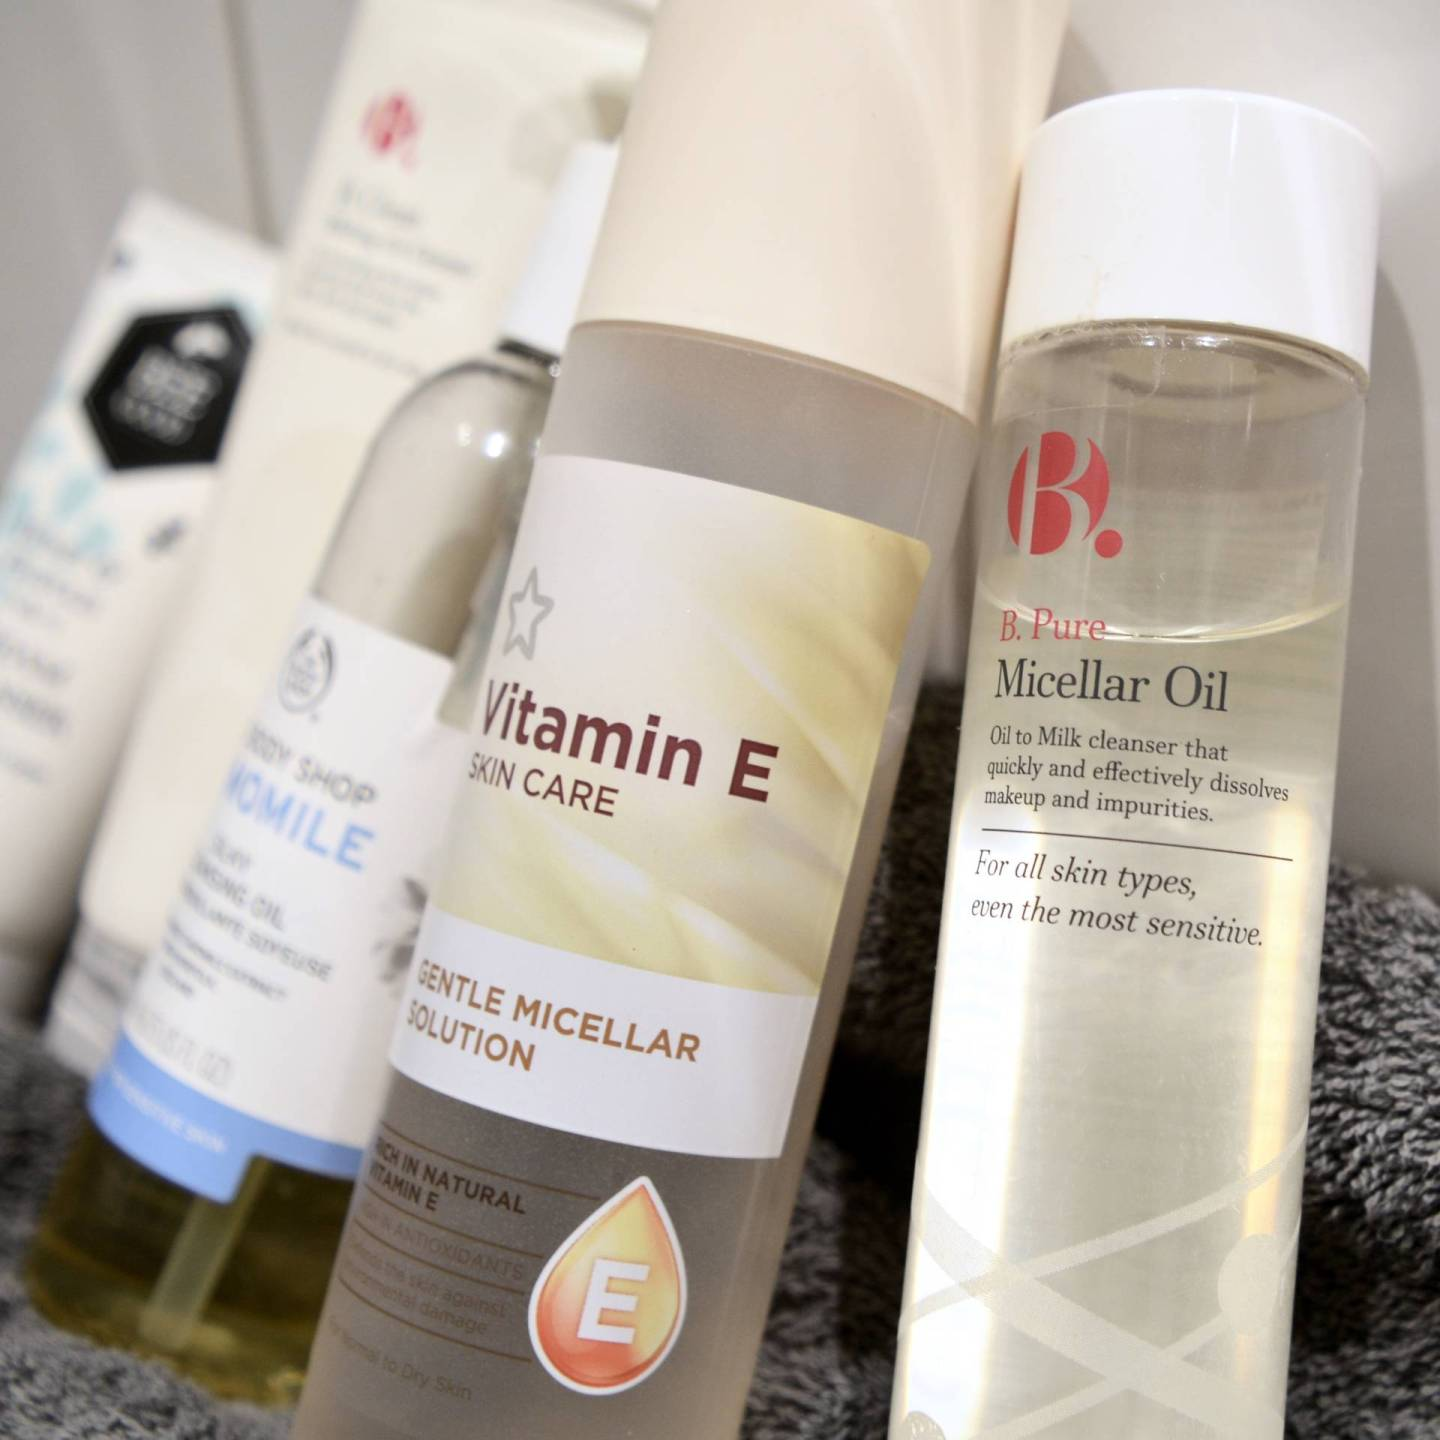 5 best budget cleansers for sensitive skin - B.Micellar Oil // Talonted Lex